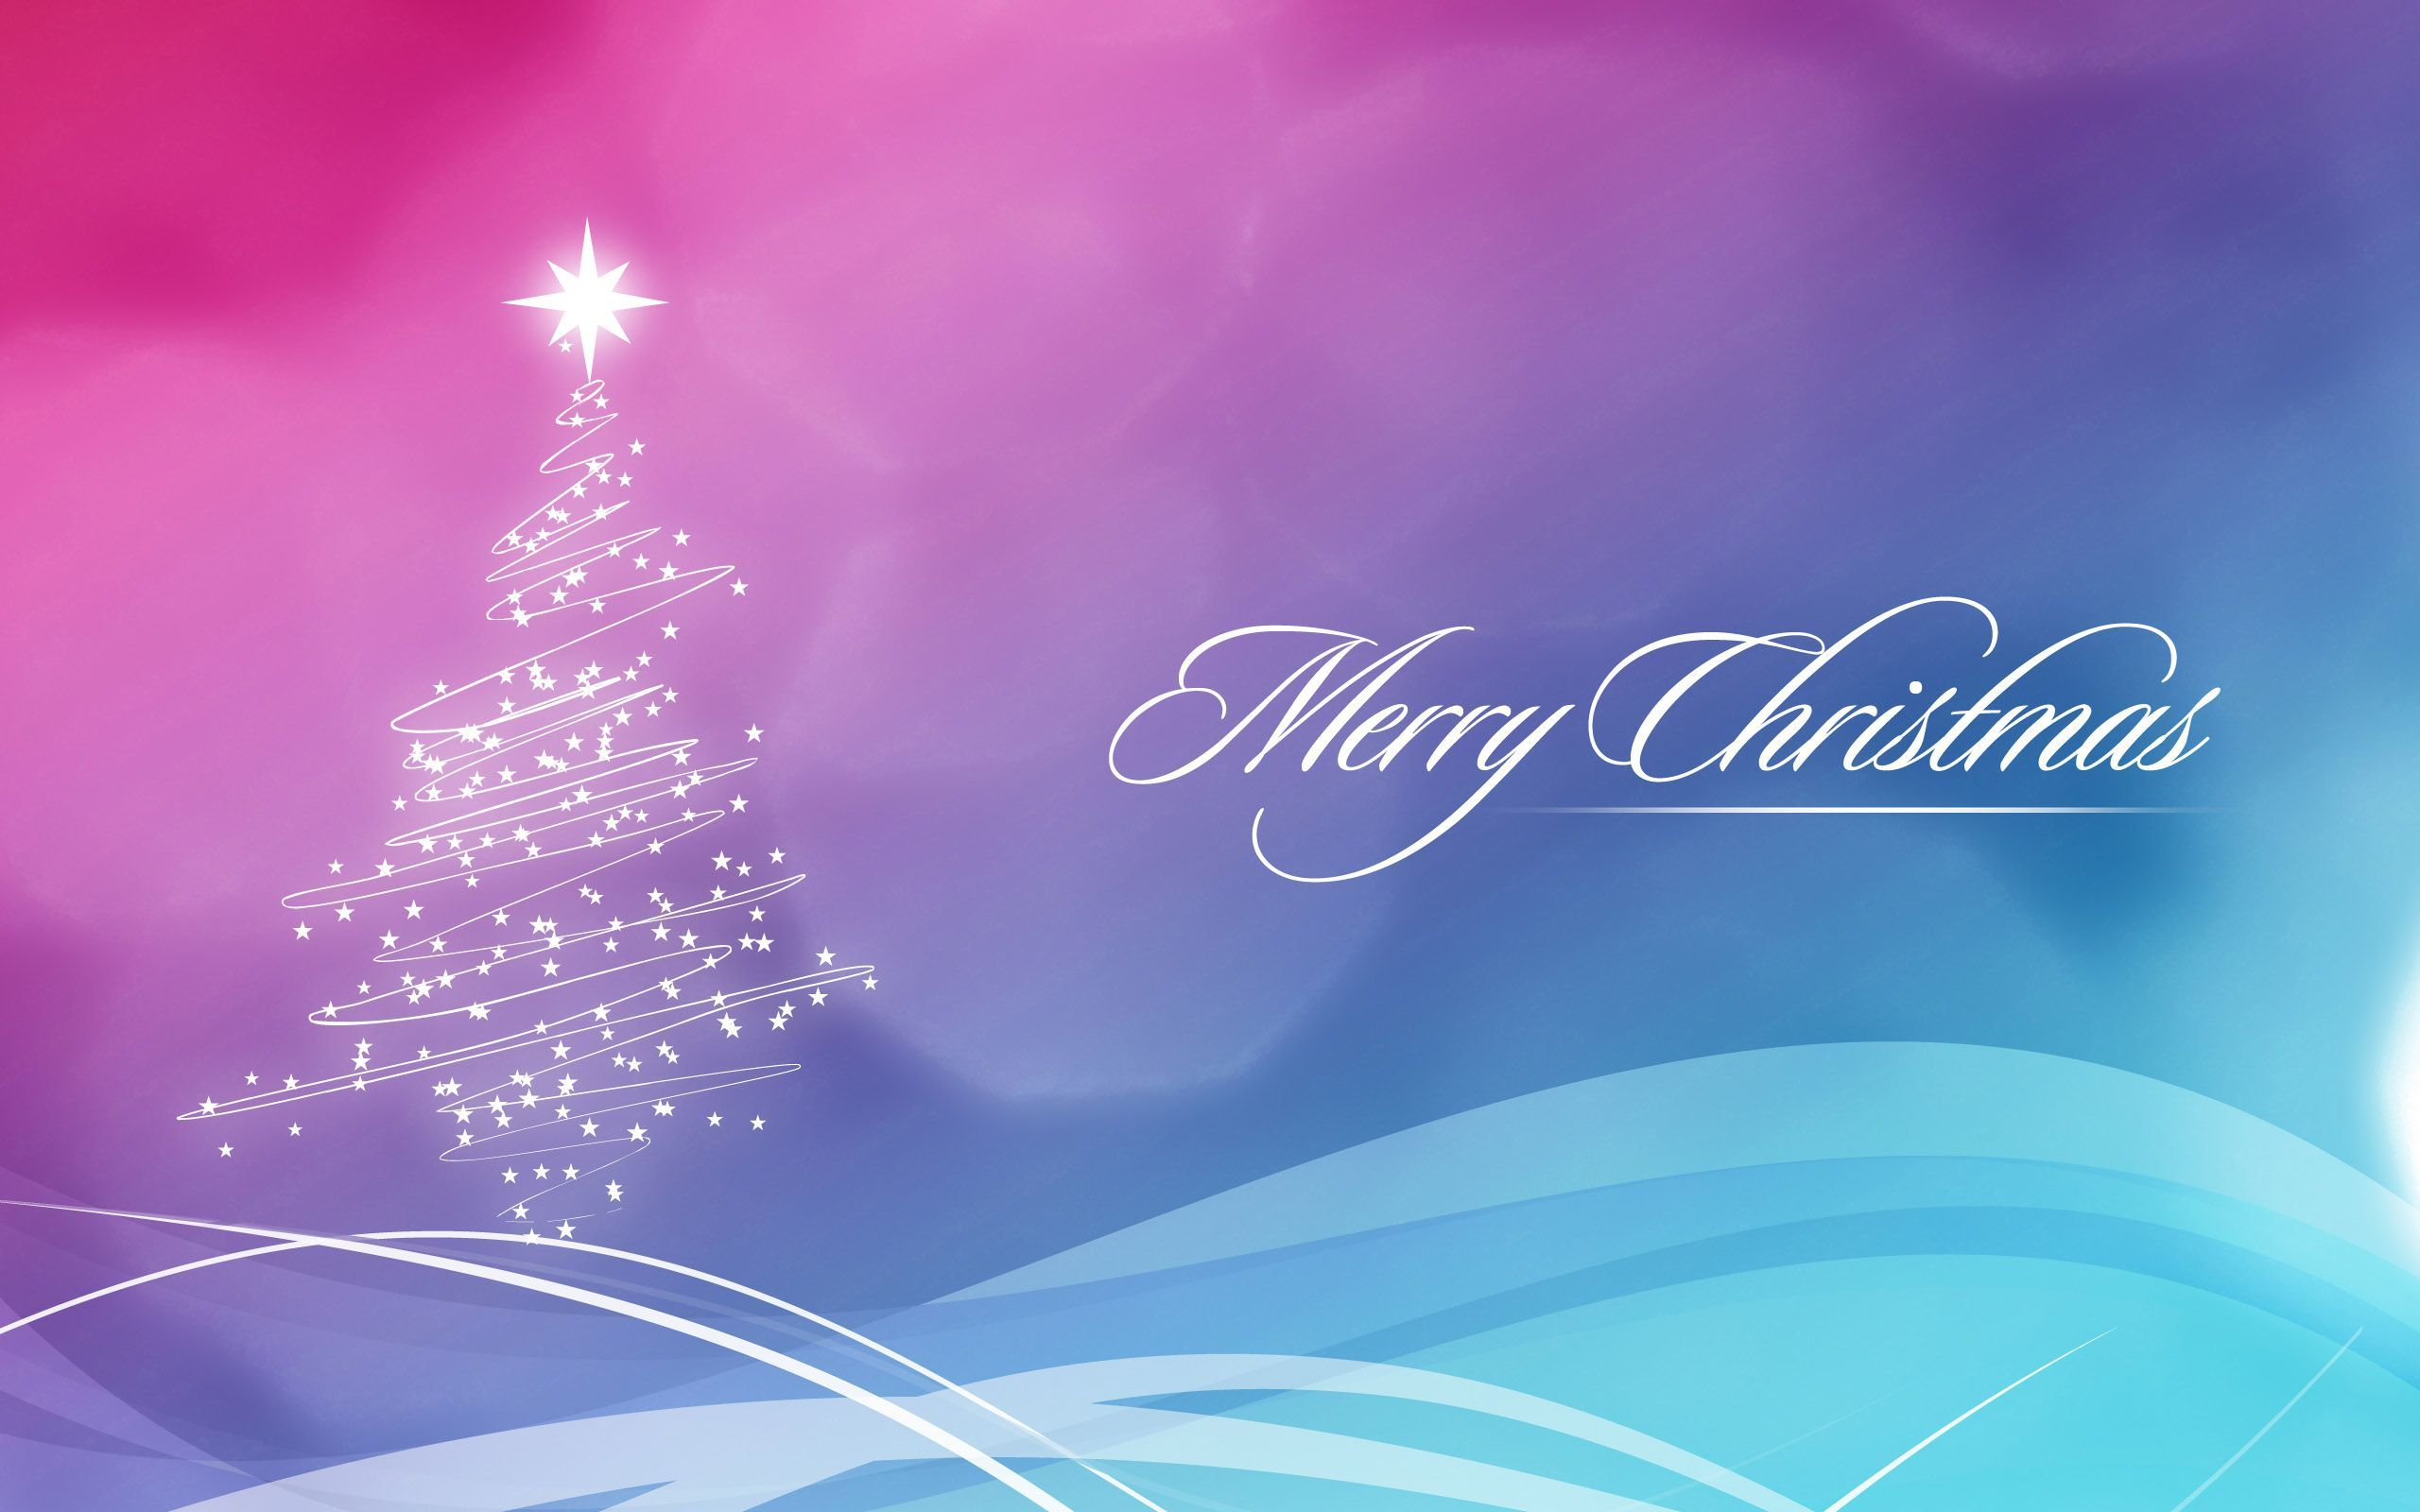 happy merry christmas 2020 hd wallpaper